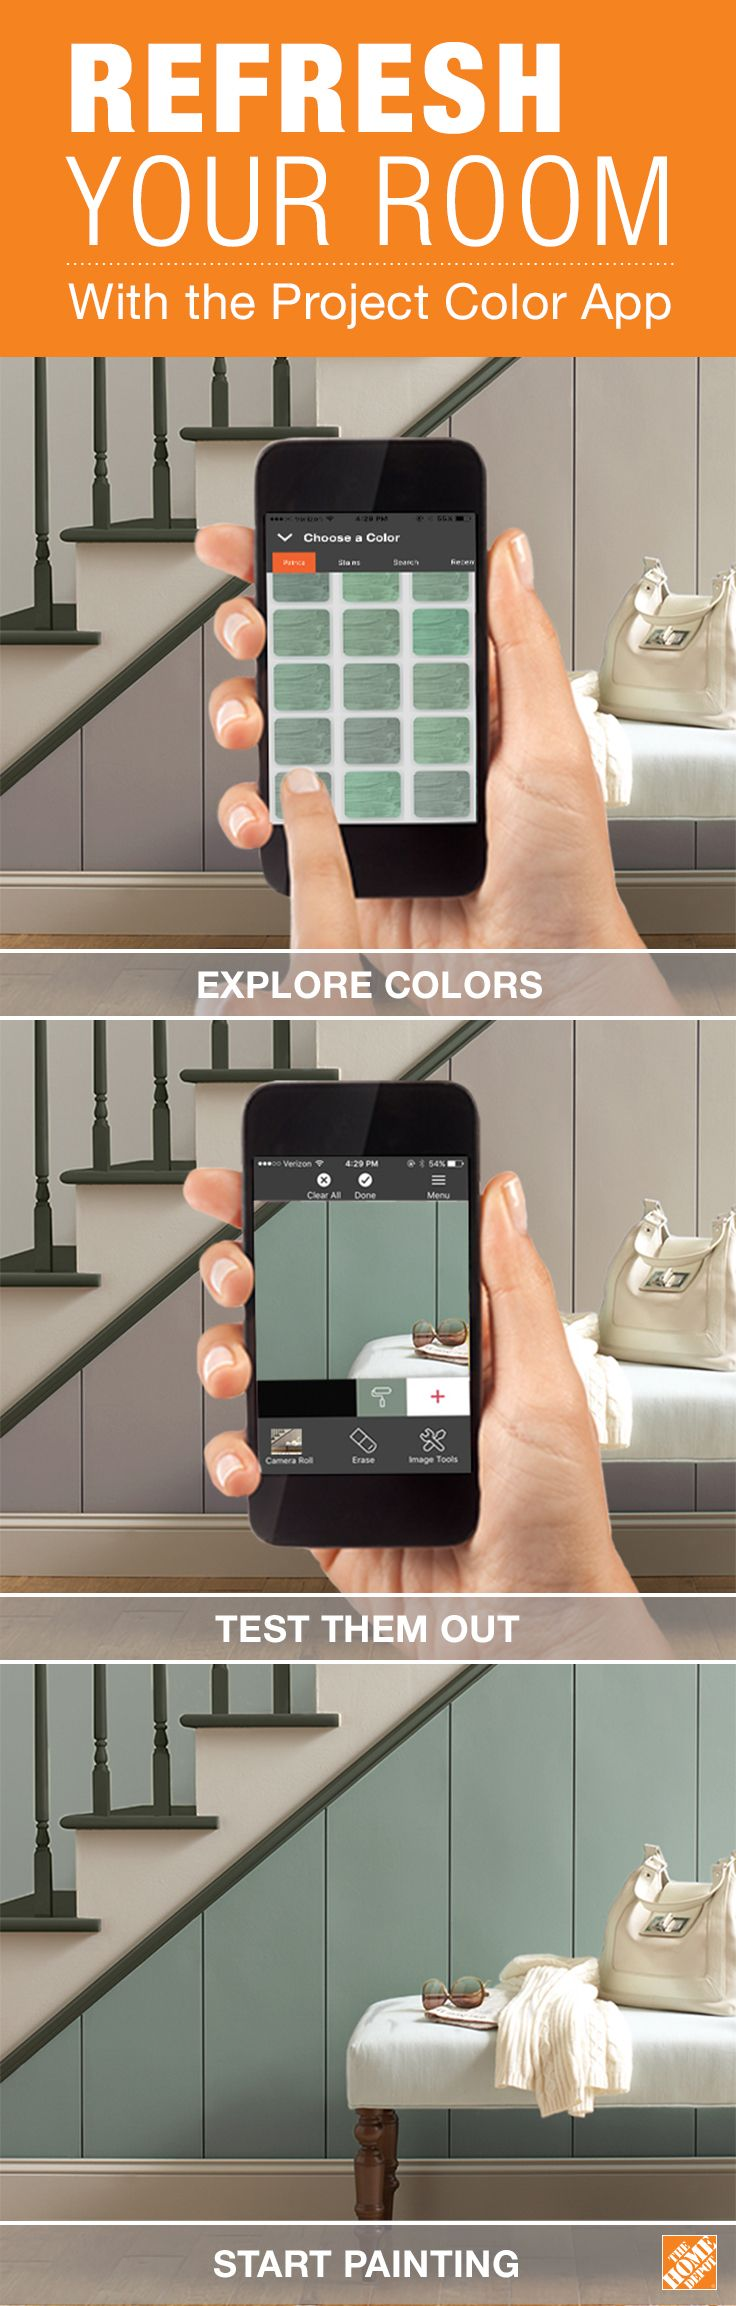 The Project Color App By Allows You To Try Out Paint Colors Virtually